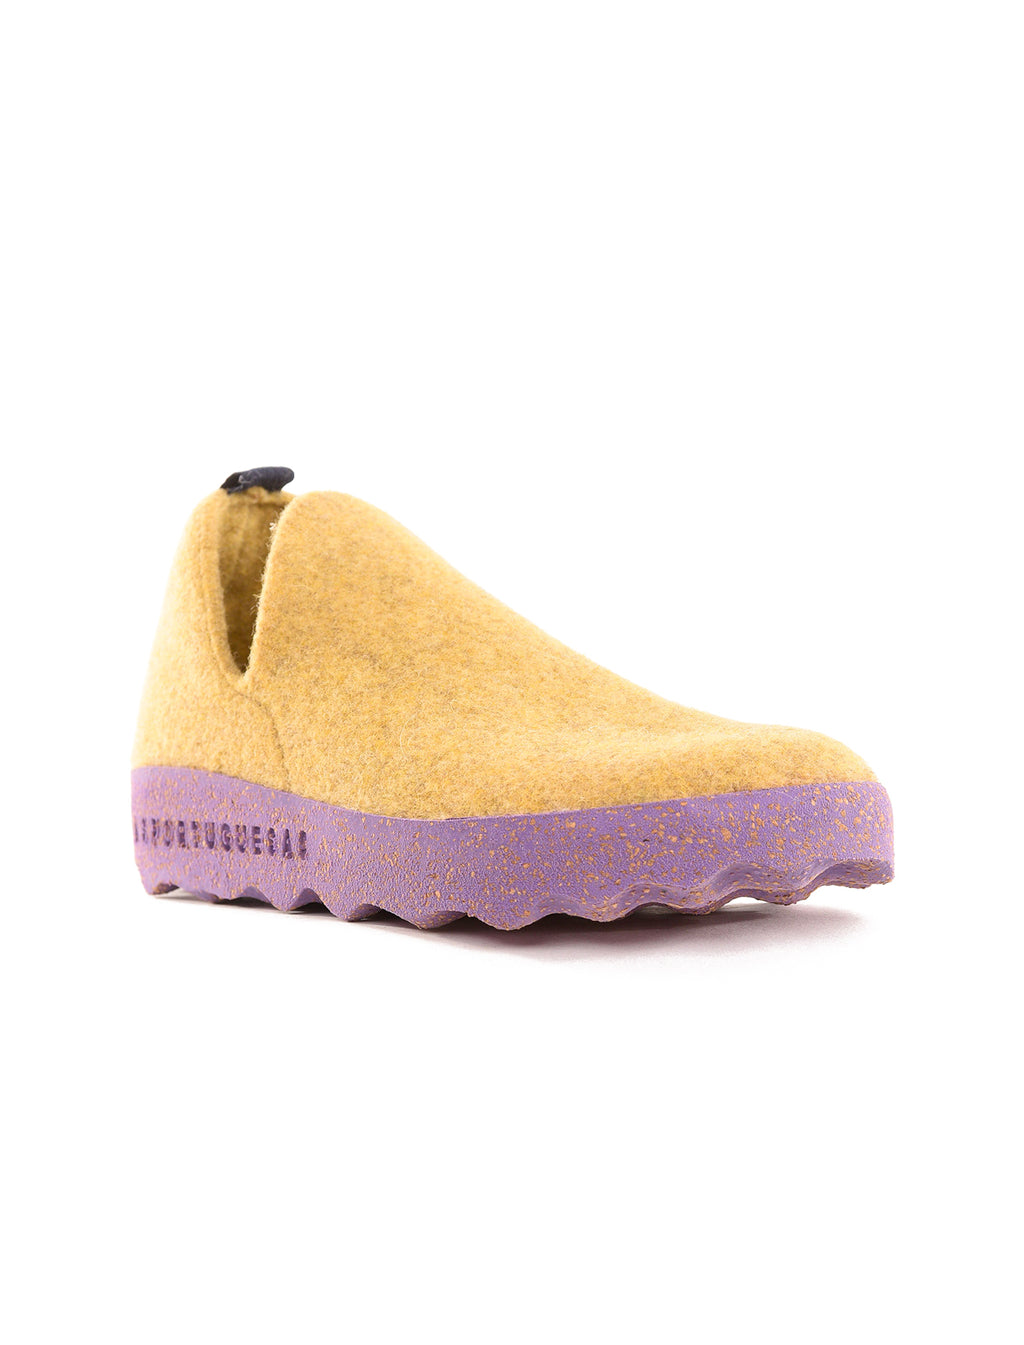 Asportuguesas City Wool Sneakers, Yellow